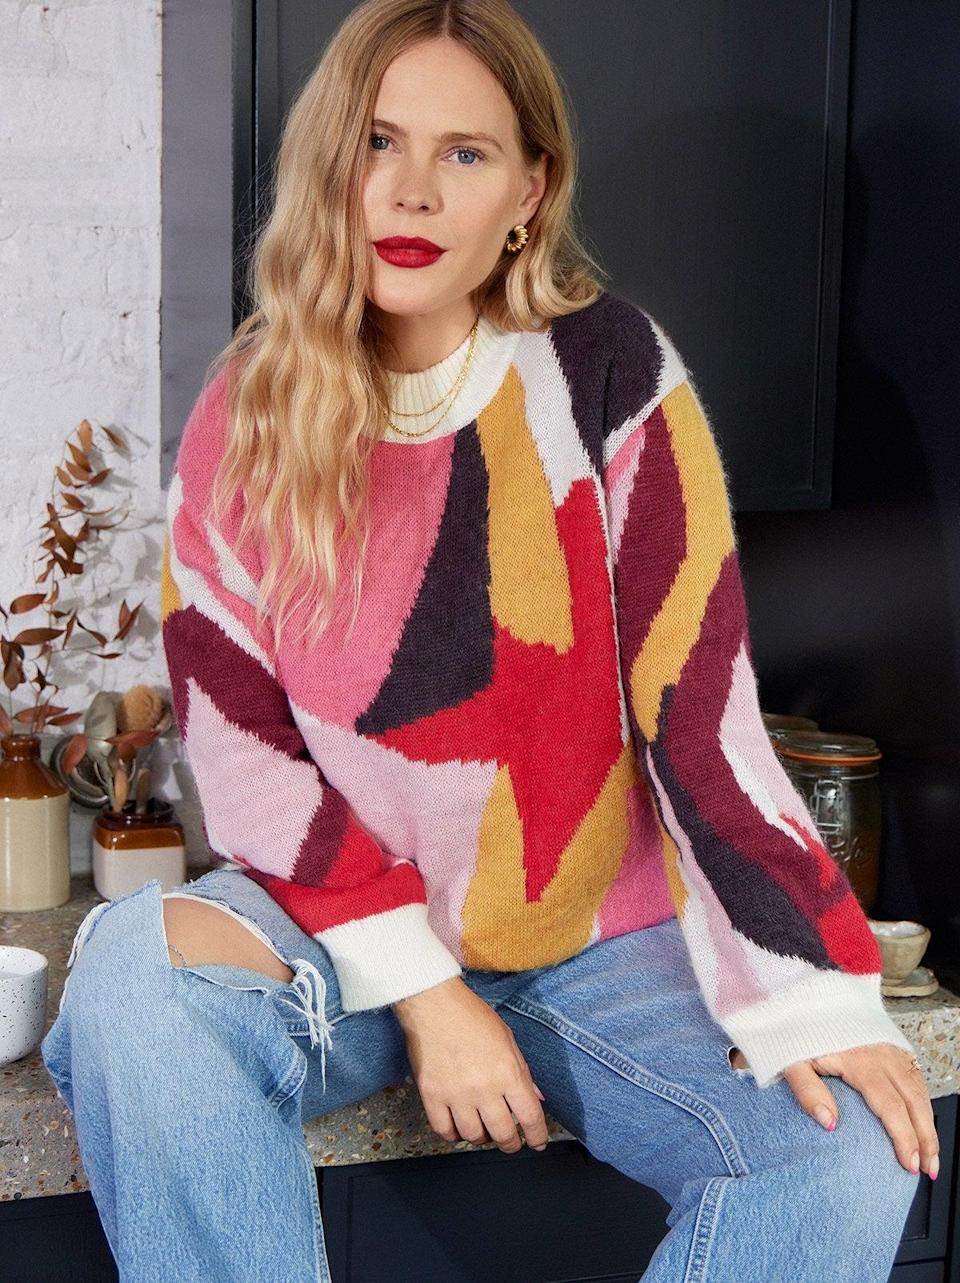 """<br><br><strong>Kitri x Jessie Bush</strong> Phoebe Abstract Intarsia Sweater, $, available at <a href=""""https://kitristudio.com/products/phoebe-abstract-intarsia-sweater?variant=39519996805171"""" rel=""""nofollow noopener"""" target=""""_blank"""" data-ylk=""""slk:Kitri"""" class=""""link rapid-noclick-resp"""">Kitri</a>"""